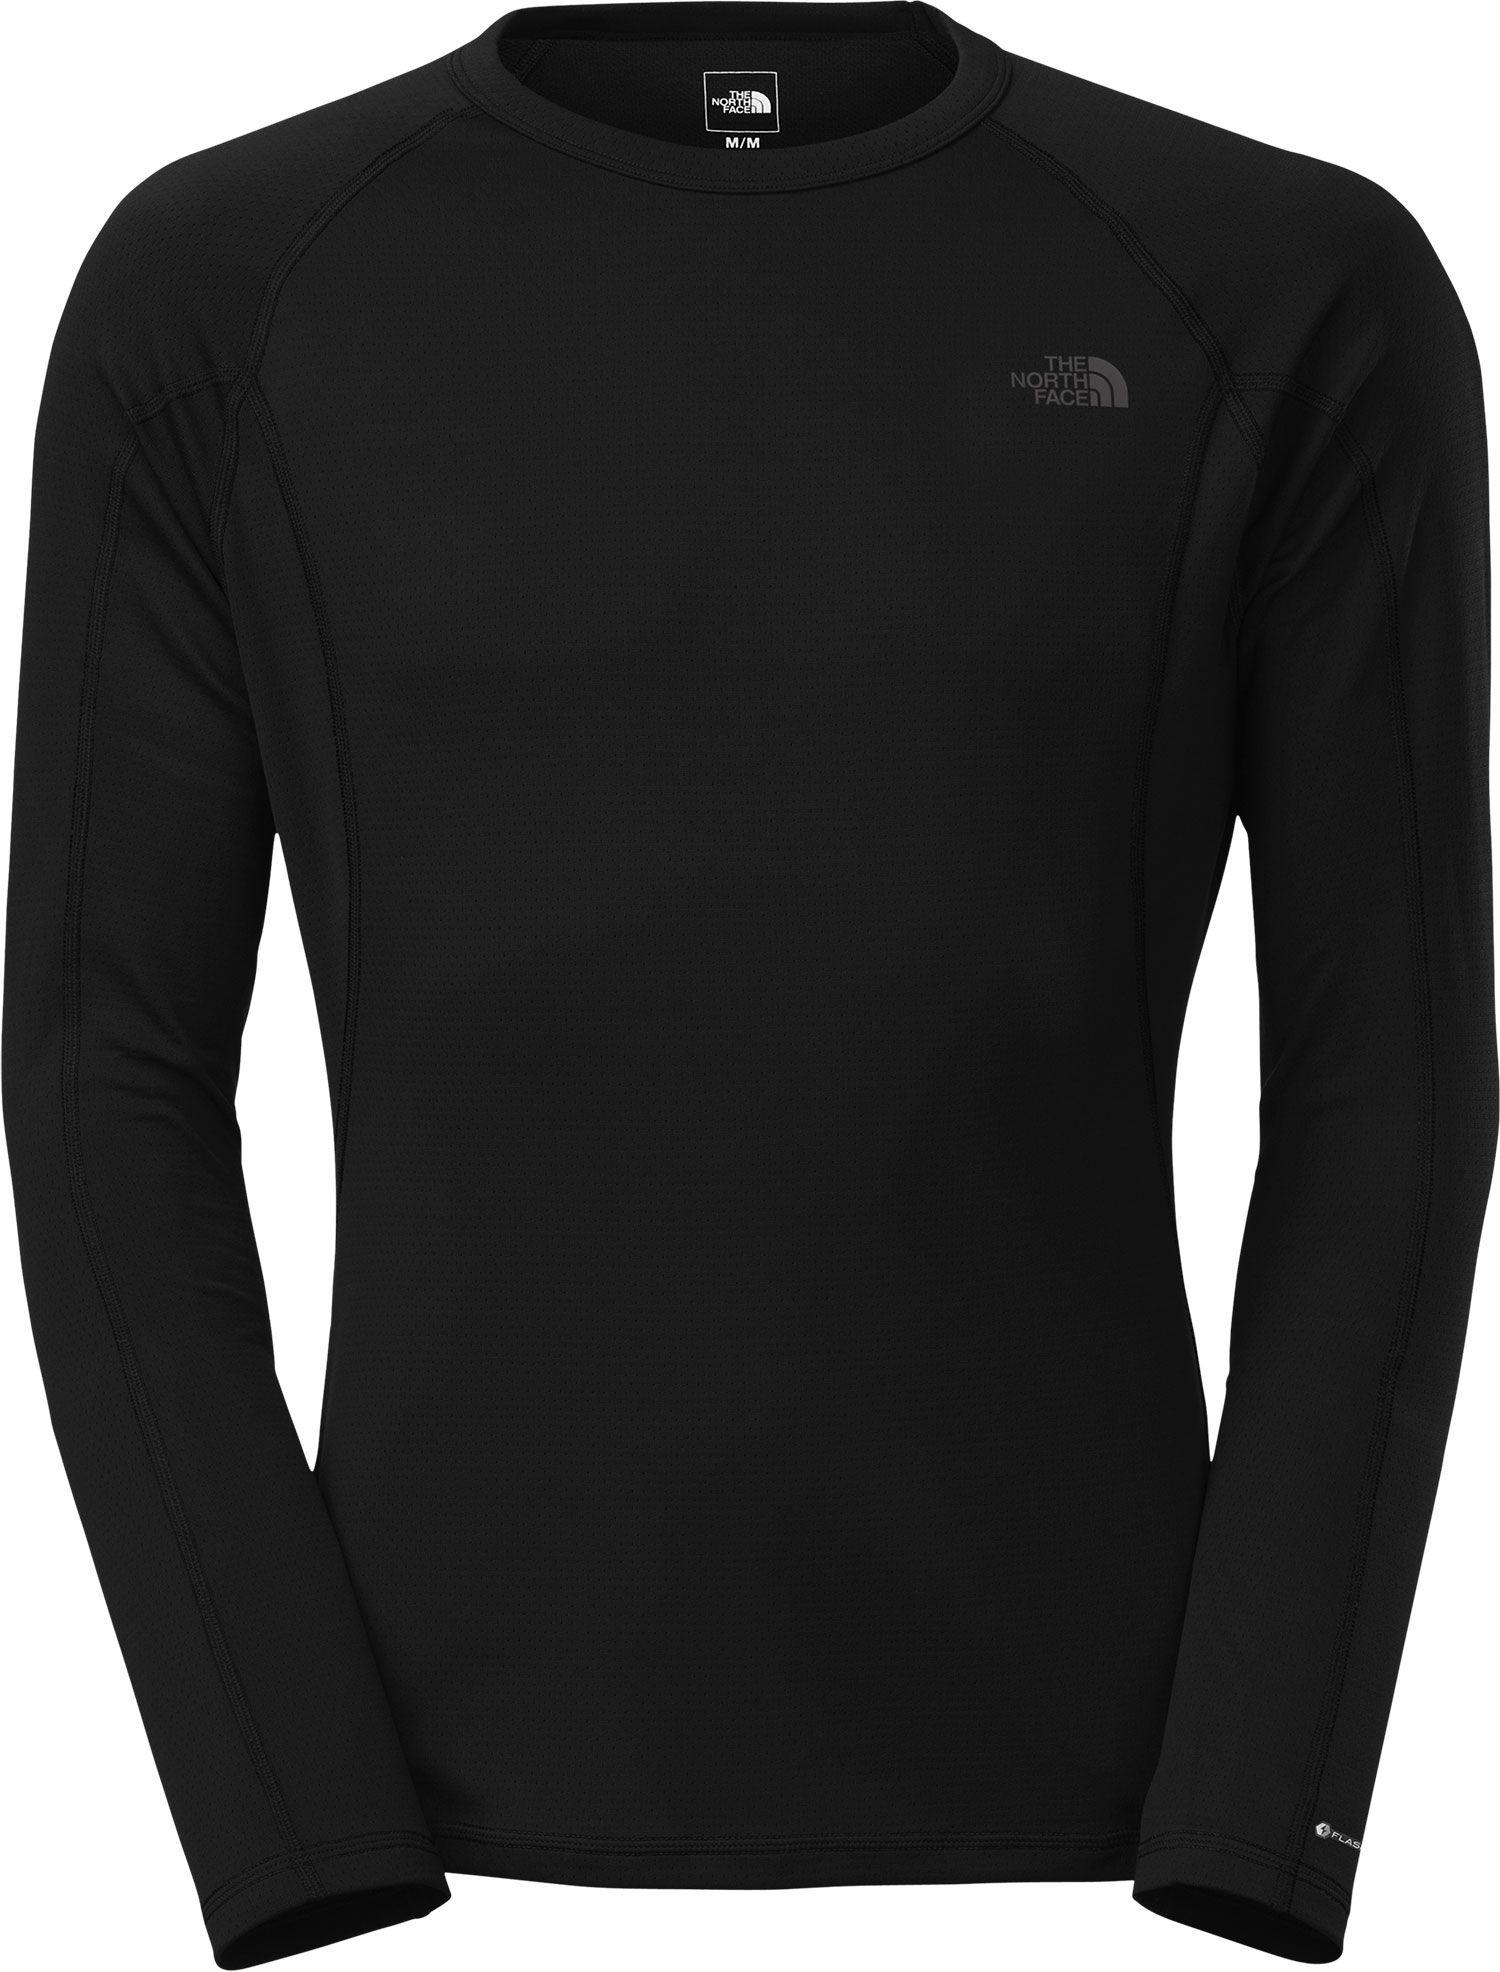 a9787361c The North Face - Black Warm Baselayer Shirt - Lyst